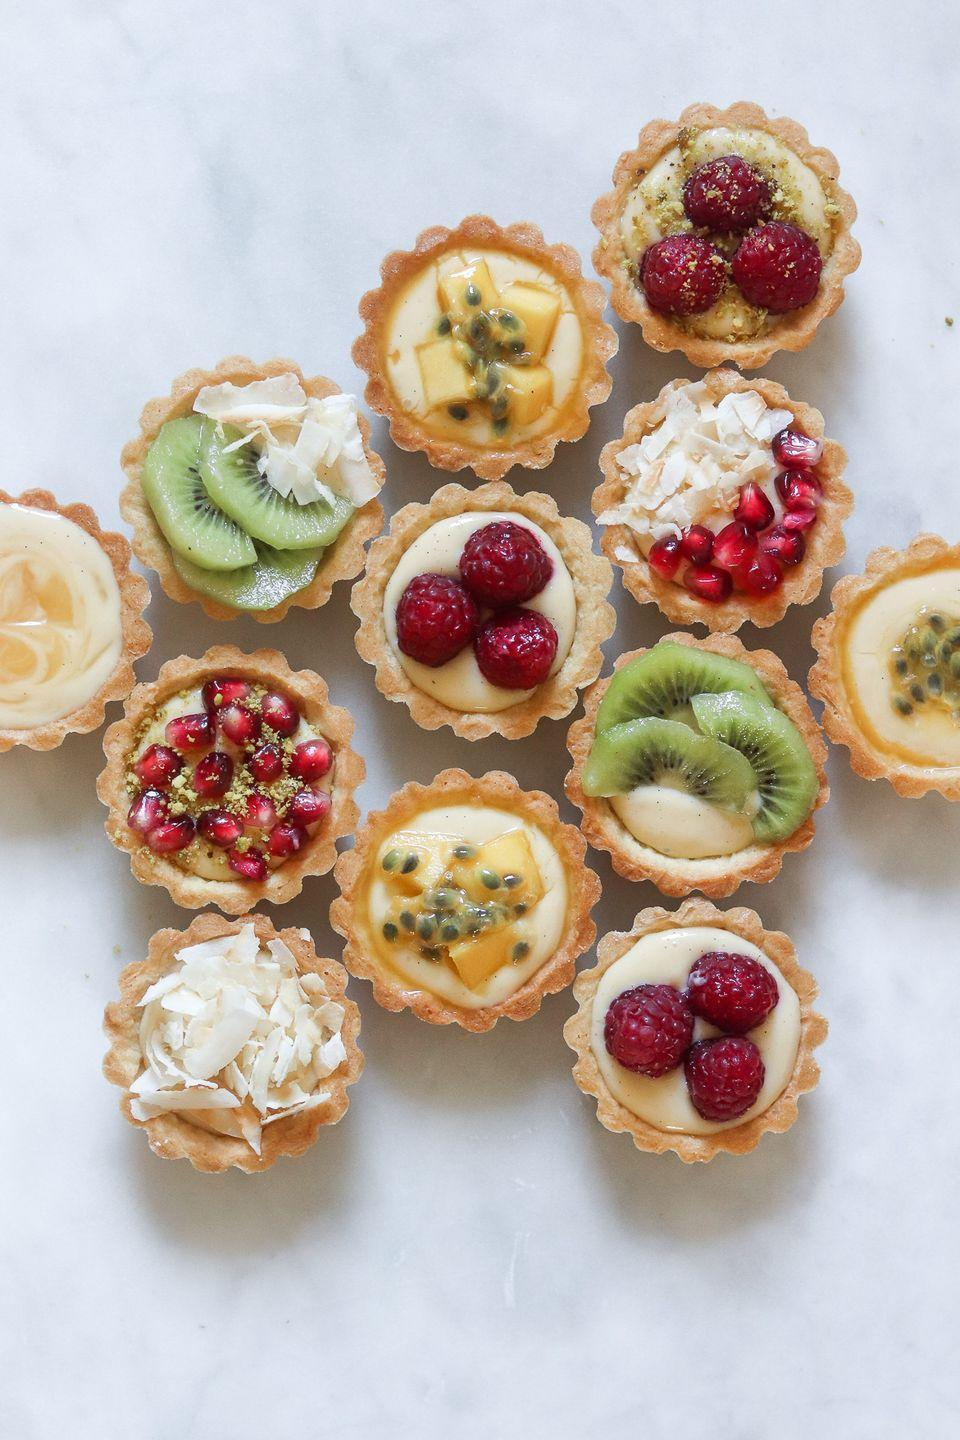 """<p>These adorable, bite-sized tarts are made with a shortbread crust and smooth pastry cream. Choose whatever summer toppings you like best: passionfruit, fresh berries, toasted coconut, or even lemon curd. </p><p><strong>Get the recipe at <a href=""""https://www.carrotandcrumb.com/blog/summer-tarts?rq=pie"""" rel=""""nofollow noopener"""" target=""""_blank"""" data-ylk=""""slk:Carrot and Crumb"""" class=""""link rapid-noclick-resp"""">Carrot and Crumb</a>. </strong></p><p><a class=""""link rapid-noclick-resp"""" href=""""https://go.redirectingat.com?id=74968X1596630&url=https%3A%2F%2Fwww.walmart.com%2Fsearch%2F%3Fquery%3Dtart%2Btins&sref=https%3A%2F%2Fwww.thepioneerwoman.com%2Ffood-cooking%2Fmeals-menus%2Fg36558208%2Fsummer-pie-recipes%2F"""" rel=""""nofollow noopener"""" target=""""_blank"""" data-ylk=""""slk:SHOP TART TINS"""">SHOP TART TINS</a></p>"""